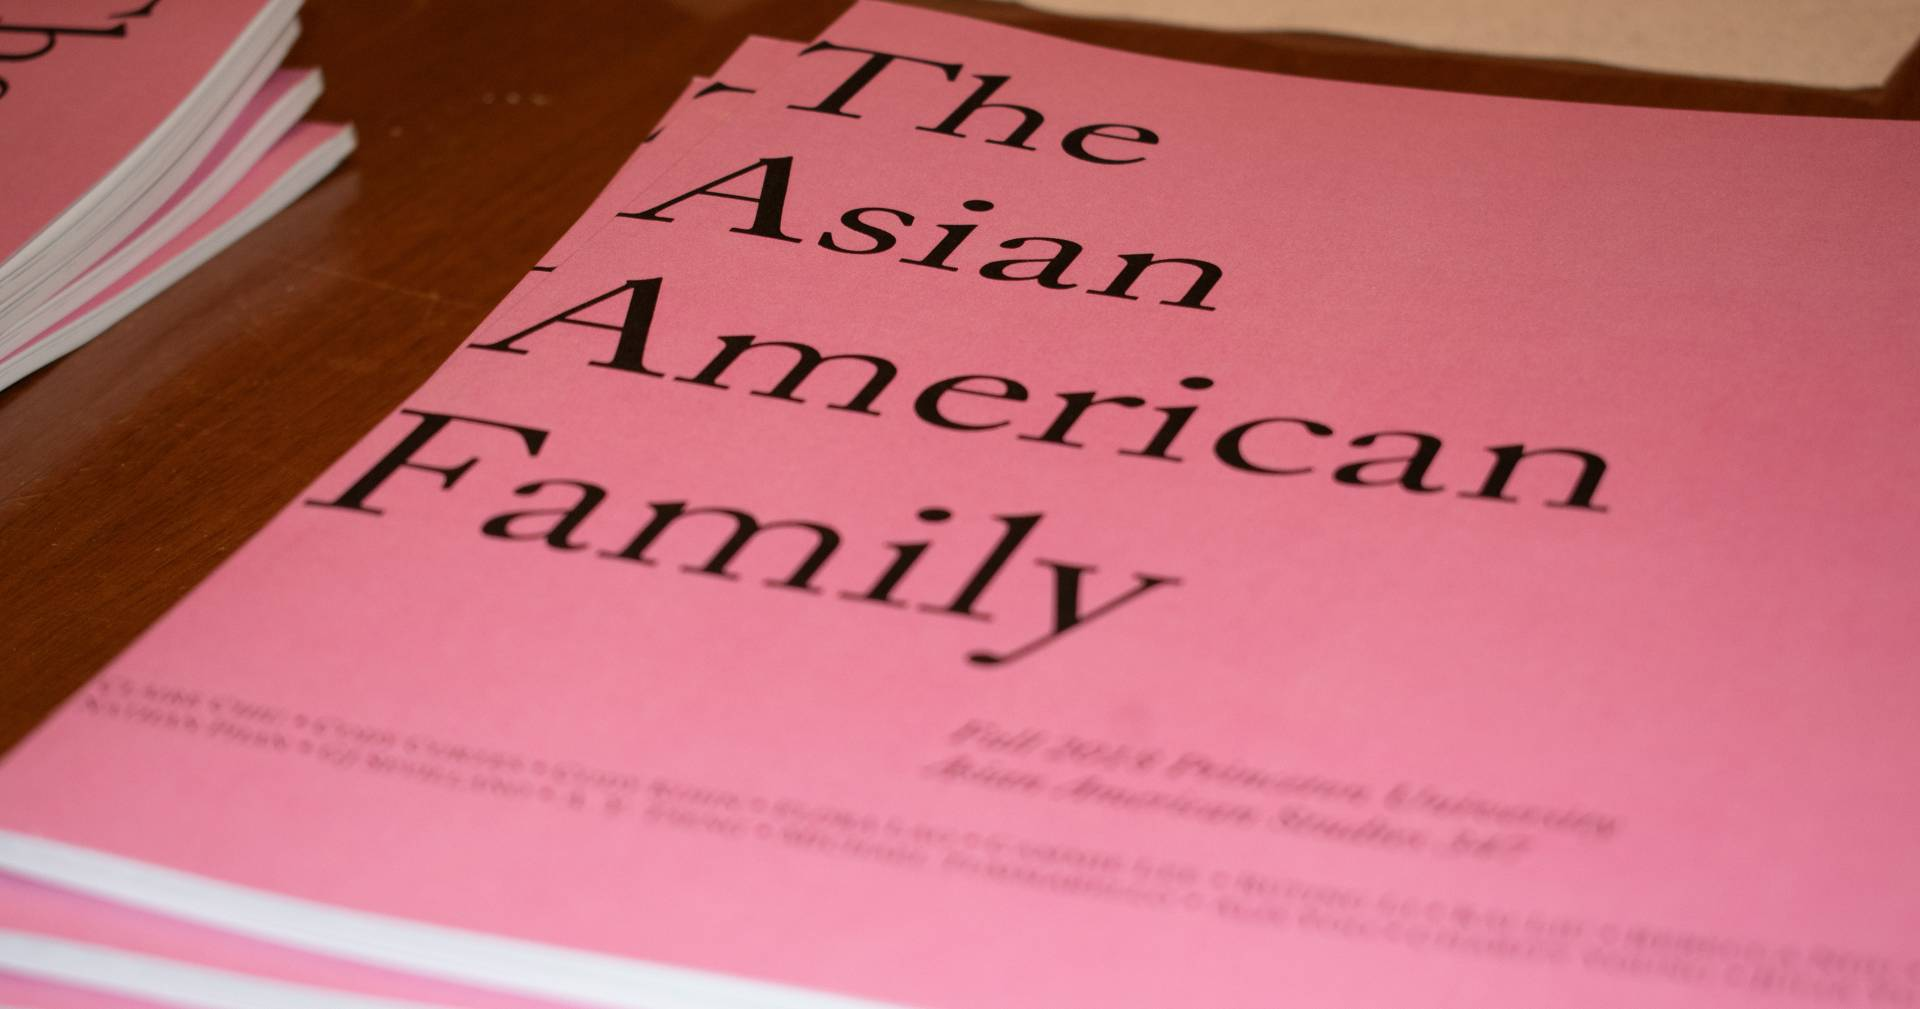 Close-up of pink covers of the Asian American Family zine